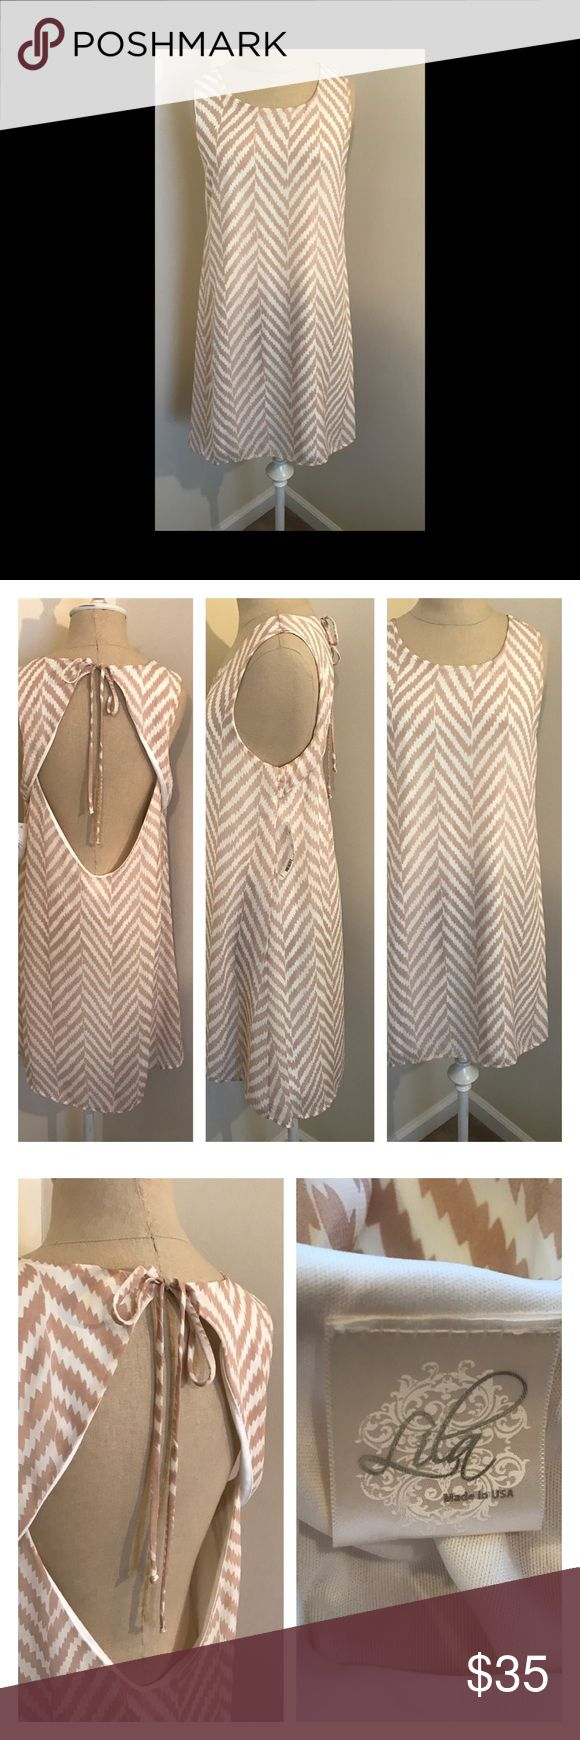 "⭐️New listing⭐️ Lila chevron dress L NWT Gorgeous tan and cream flowing dress by Lila size Large. There is no size tag, but based on measurements I believe this to be a large 8-10. Ties at back of neck and has an open back. Dress is lined. Underarm to underarm 18"", shoulder to hem 32"". No material tag so recommend hand wash. Lila Dresses"